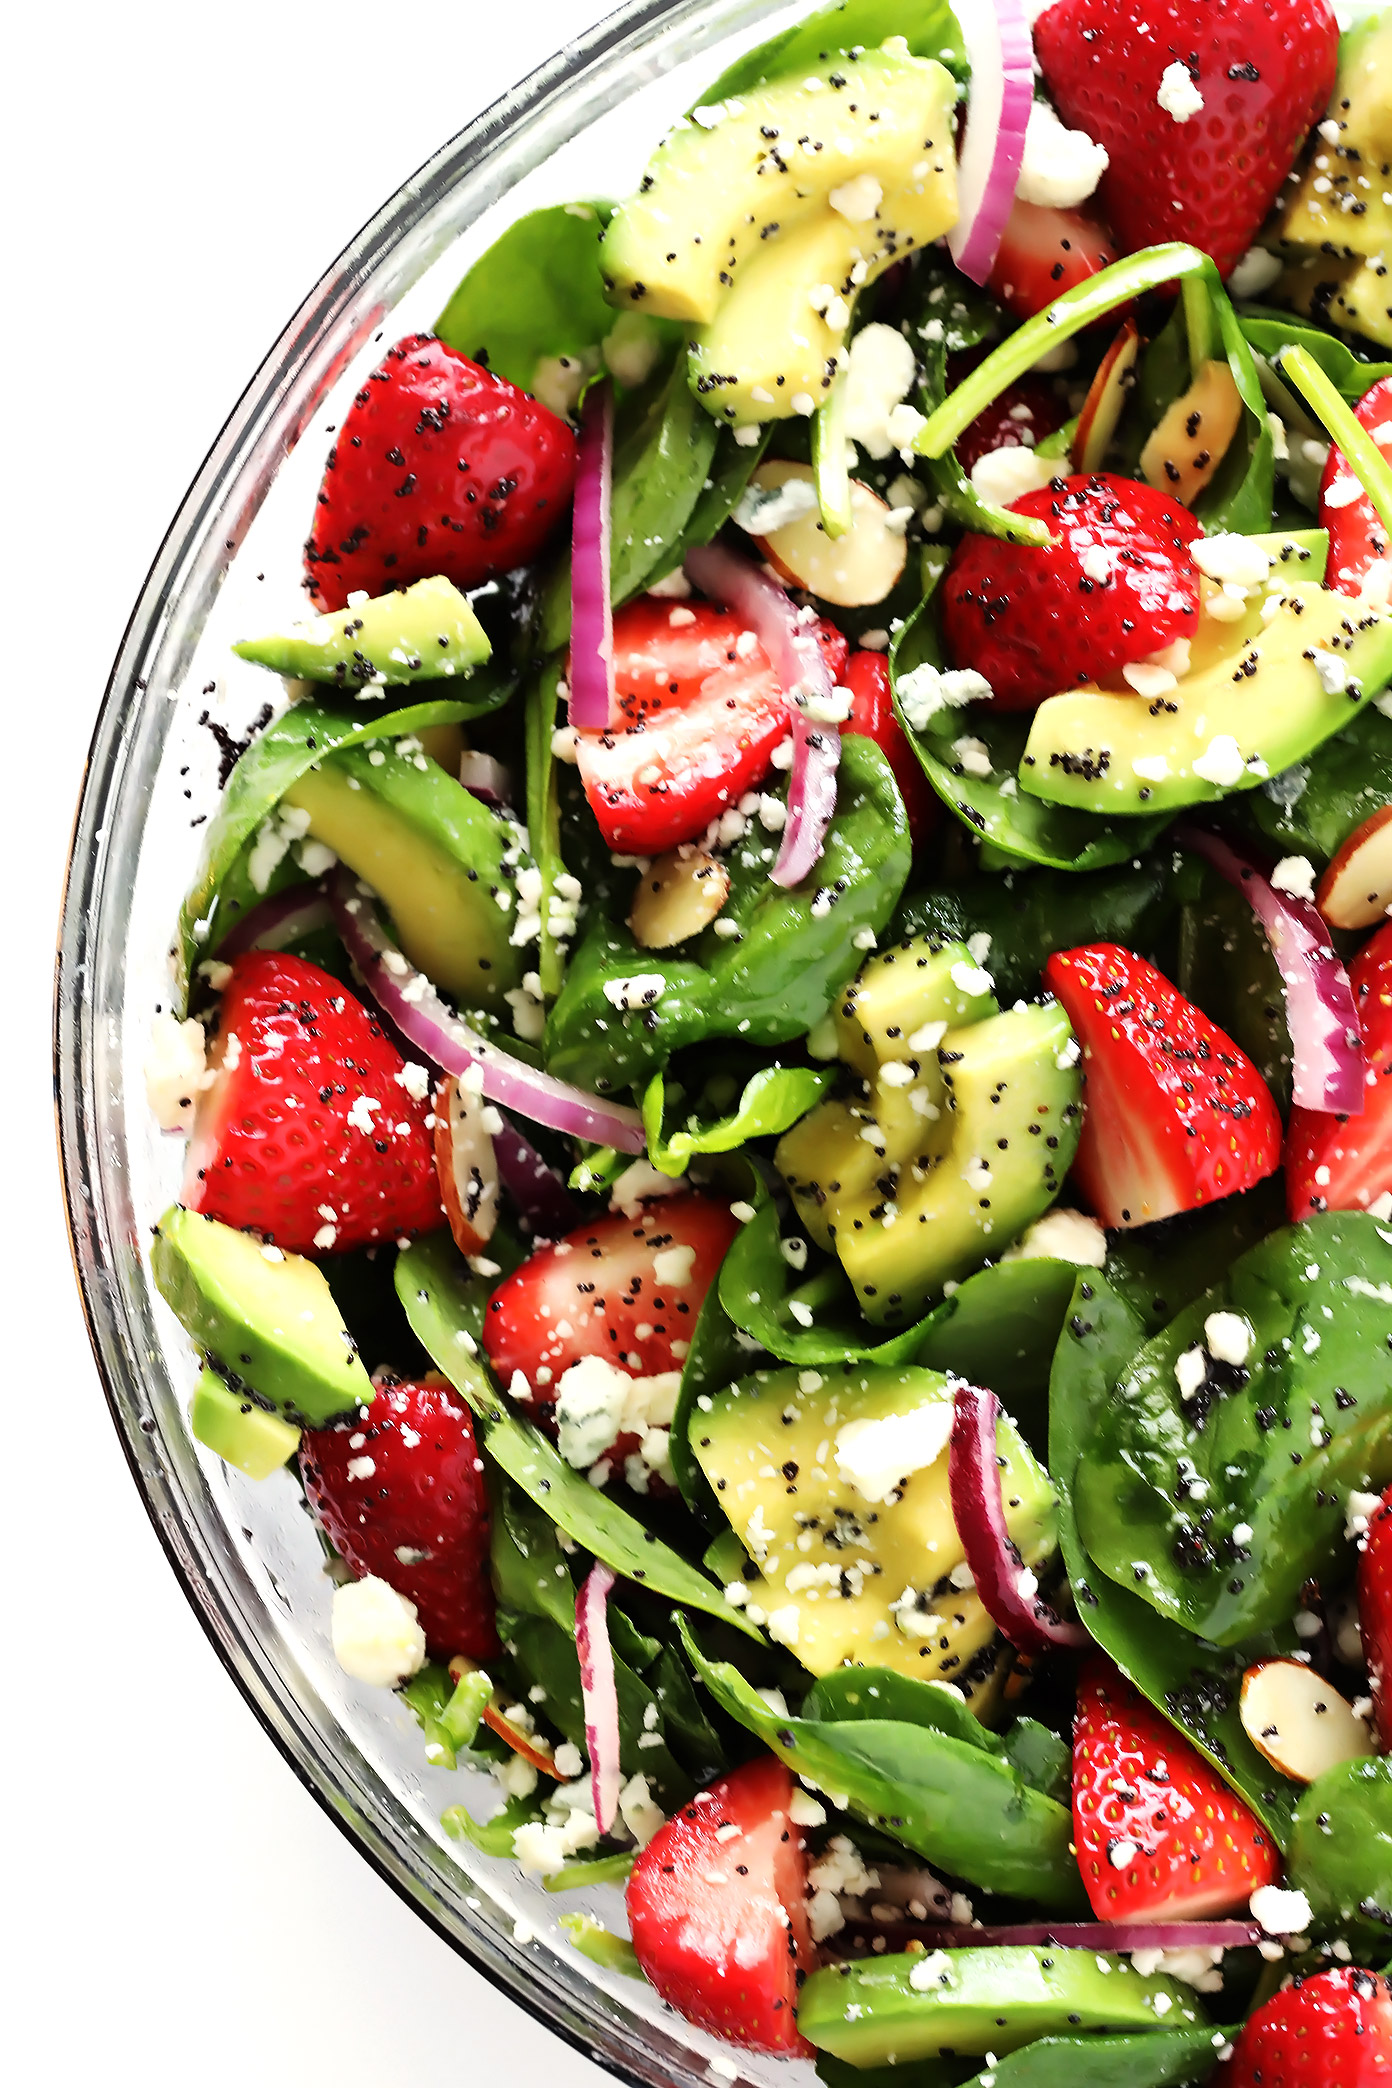 Avocado Strawberry Spinach Salad With Poppyseed